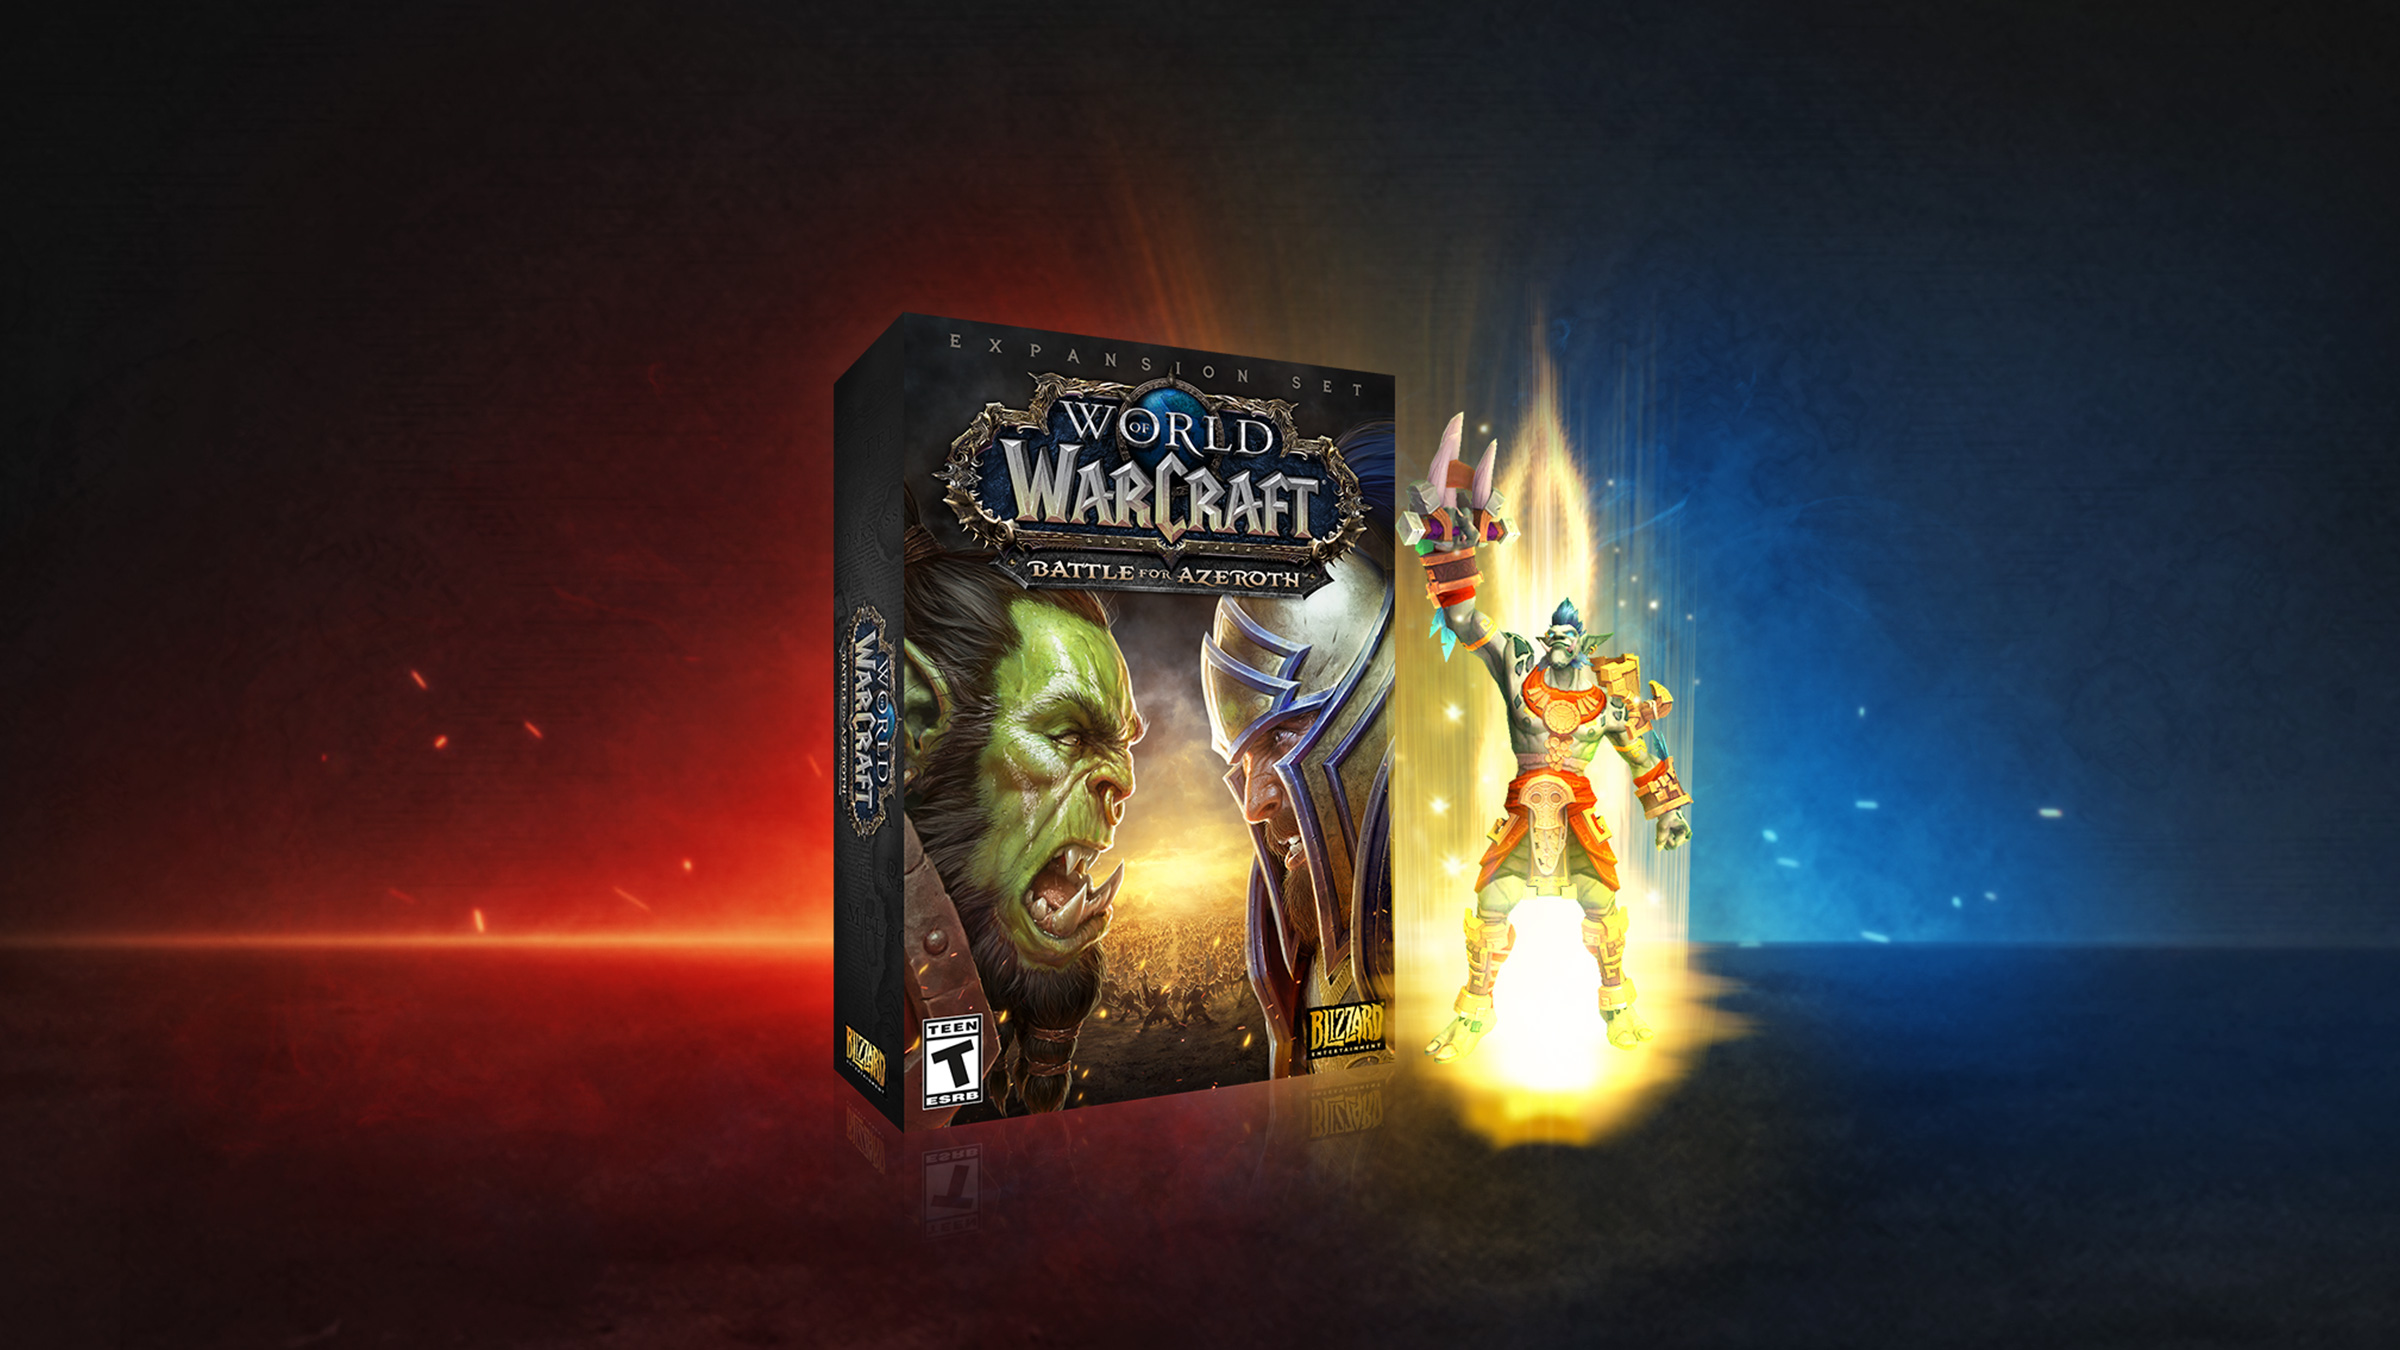 Save on World of Warcraft® and Digital Deluxe Items